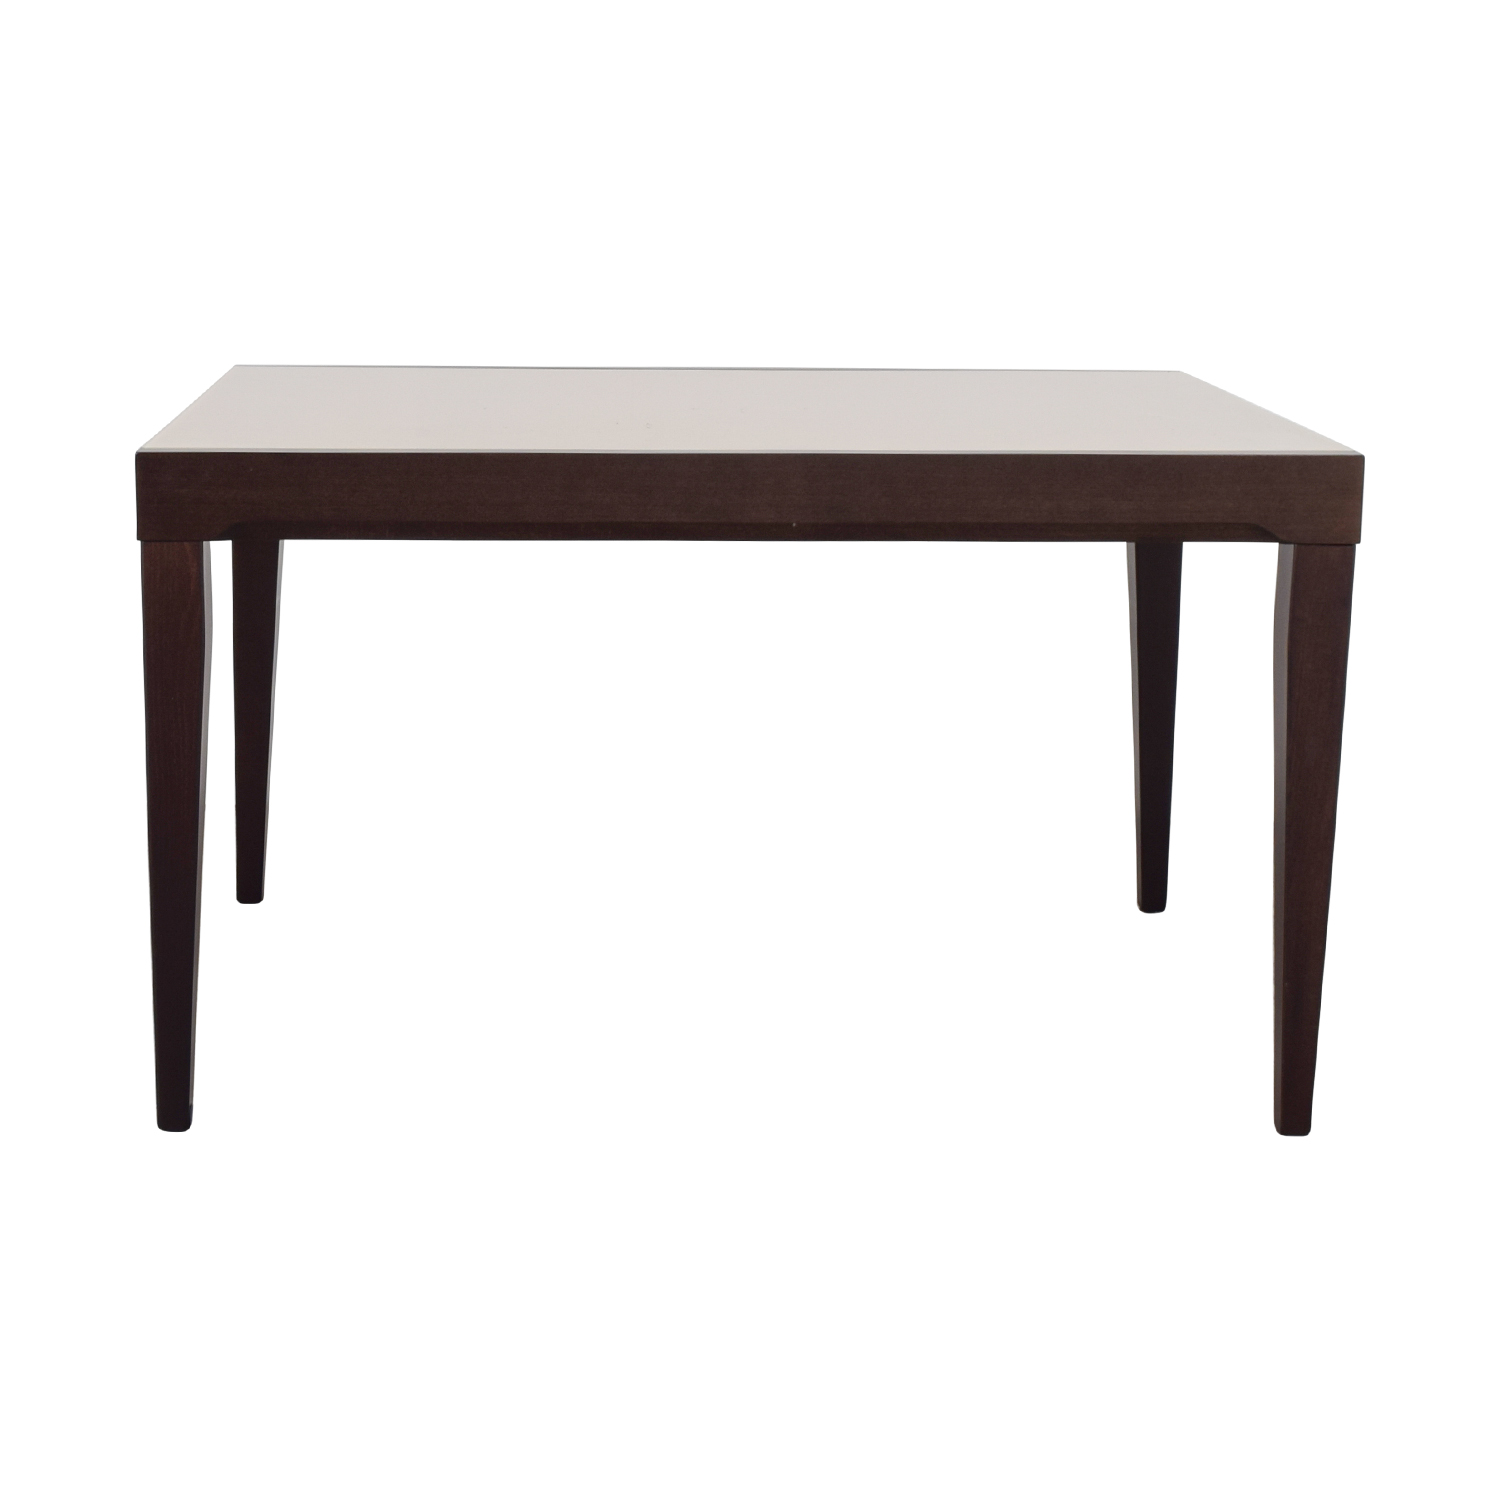 buy Macy's Cafe Latte Extendable Dining Table Macy's